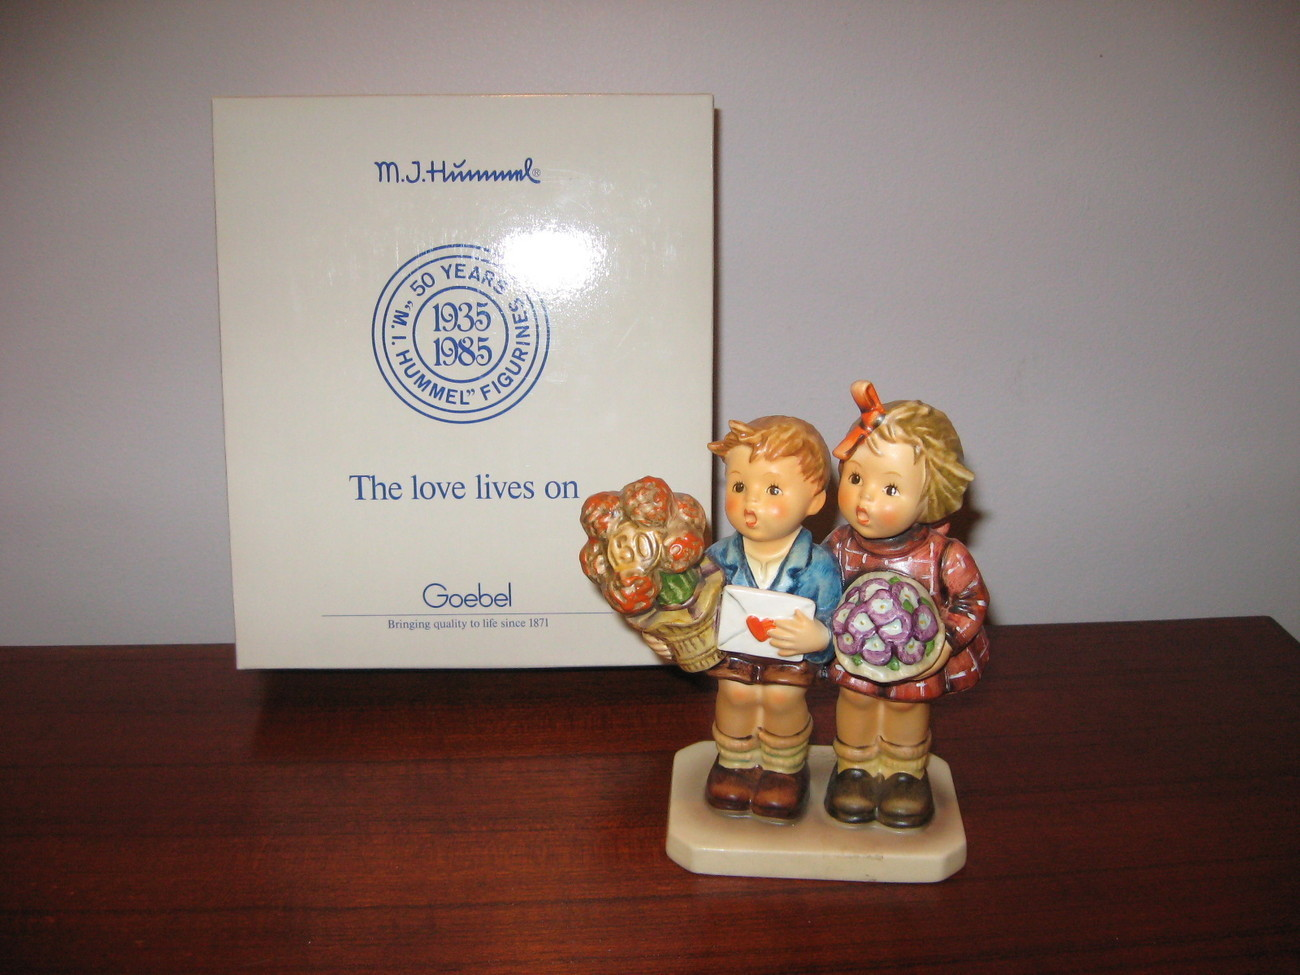 MI Hummel Figurine The Love Lives On 50 years